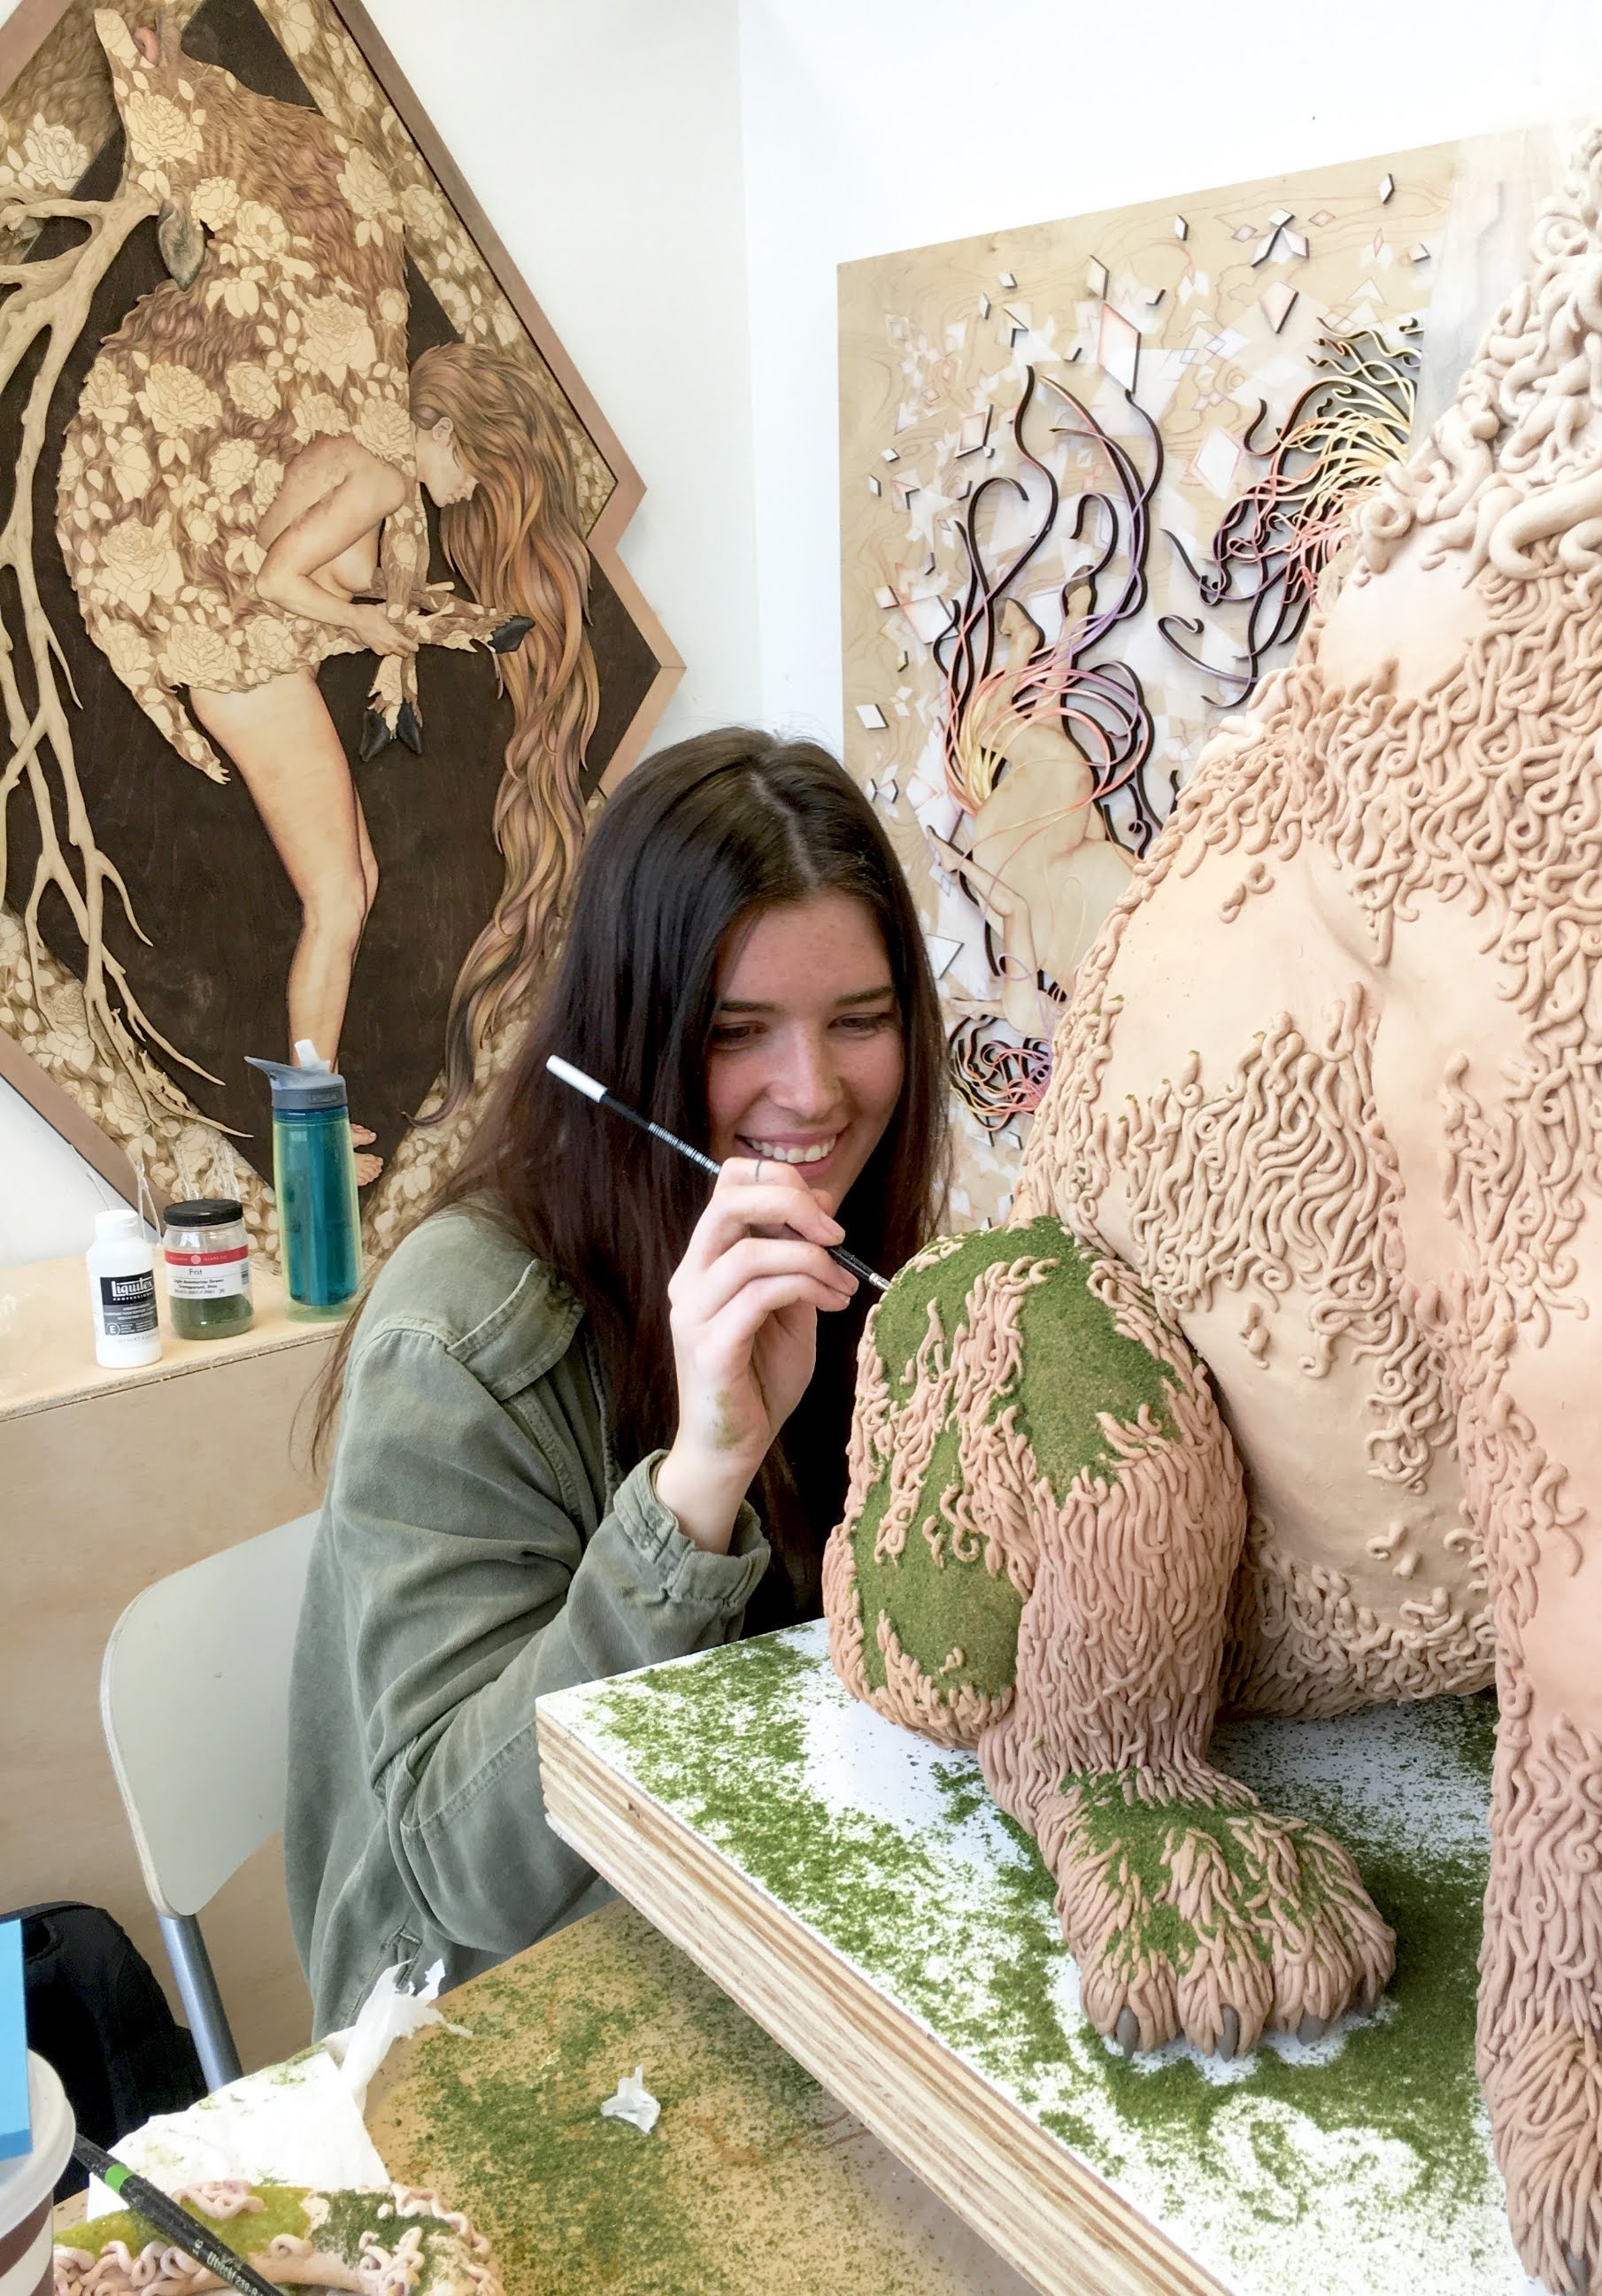 Suzanne Head painting a sculpture of a lion